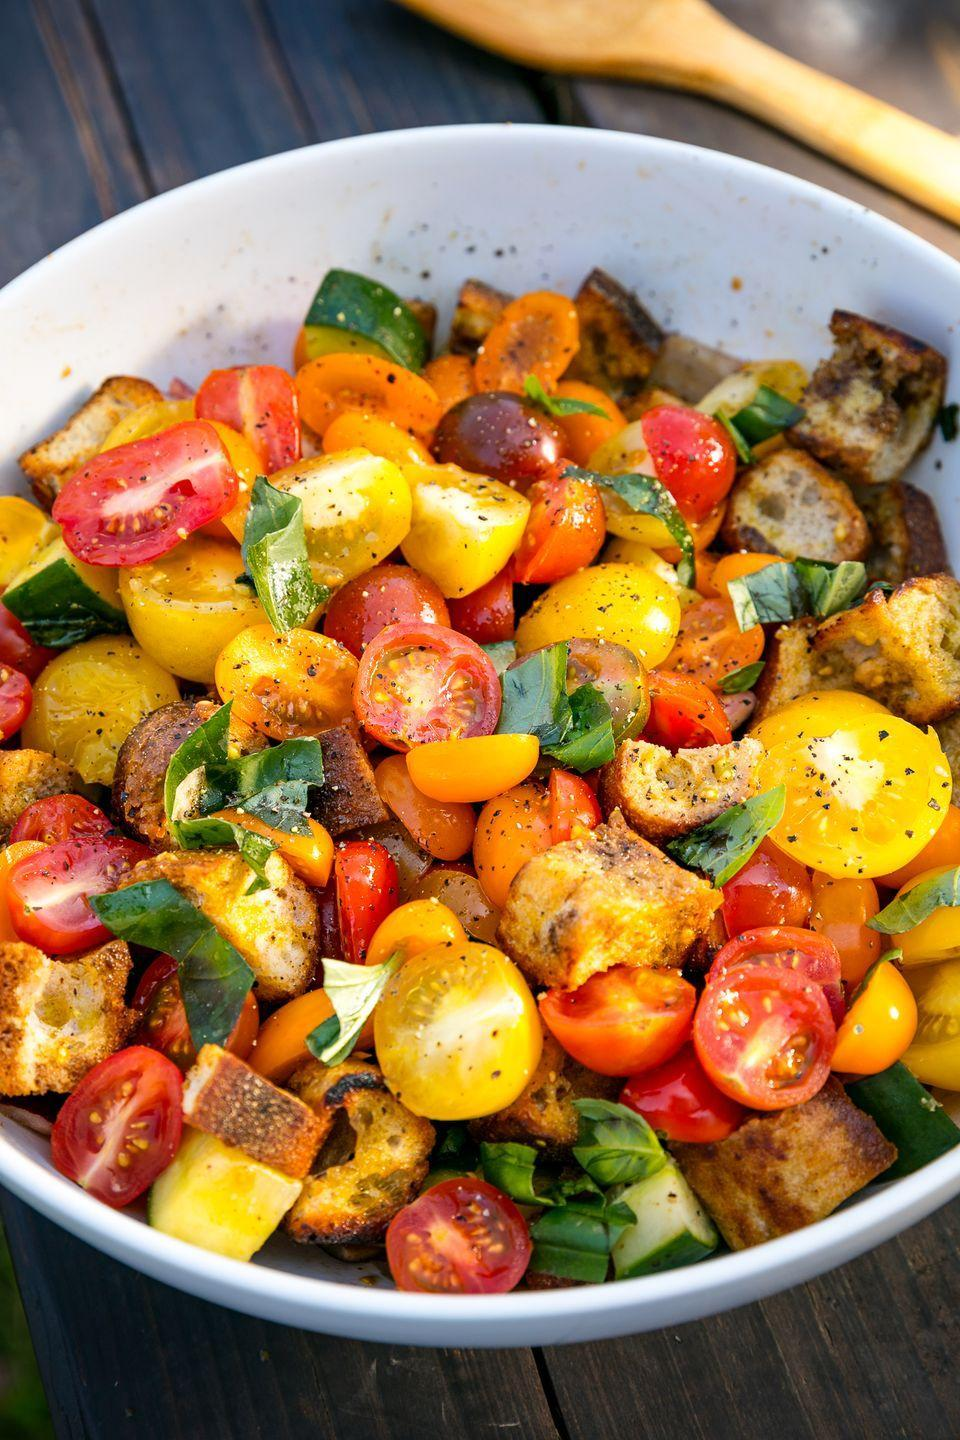 "<p>Panzan-HELL-YEA!</p><p>Get the recipe from <a href=""https://www.delish.com/cooking/recipe-ideas/recipes/a47246/summer-panzanella-recipe/"" rel=""nofollow noopener"" target=""_blank"" data-ylk=""slk:Delish"" class=""link rapid-noclick-resp"">Delish</a>.</p>"